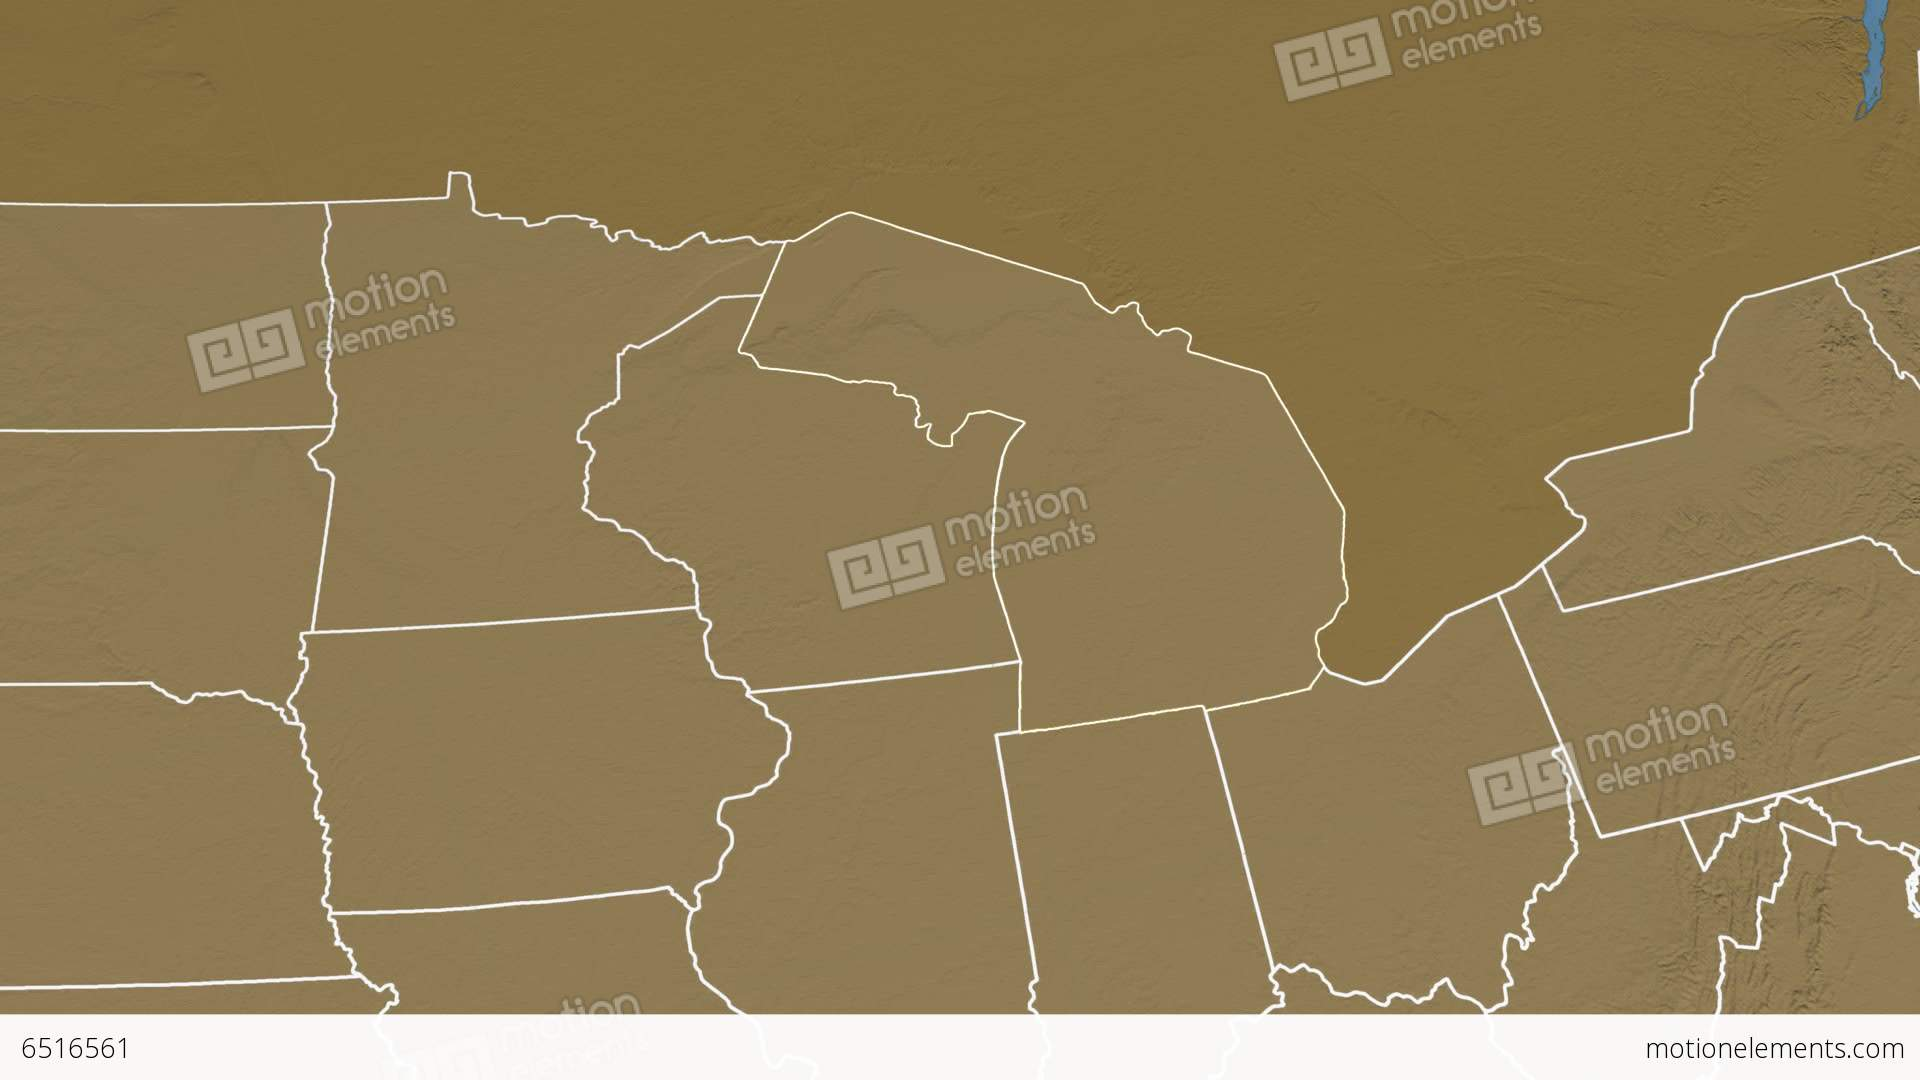 Michigan State USA Extruded Elevation Map Stock Animation - Michigan state usa map